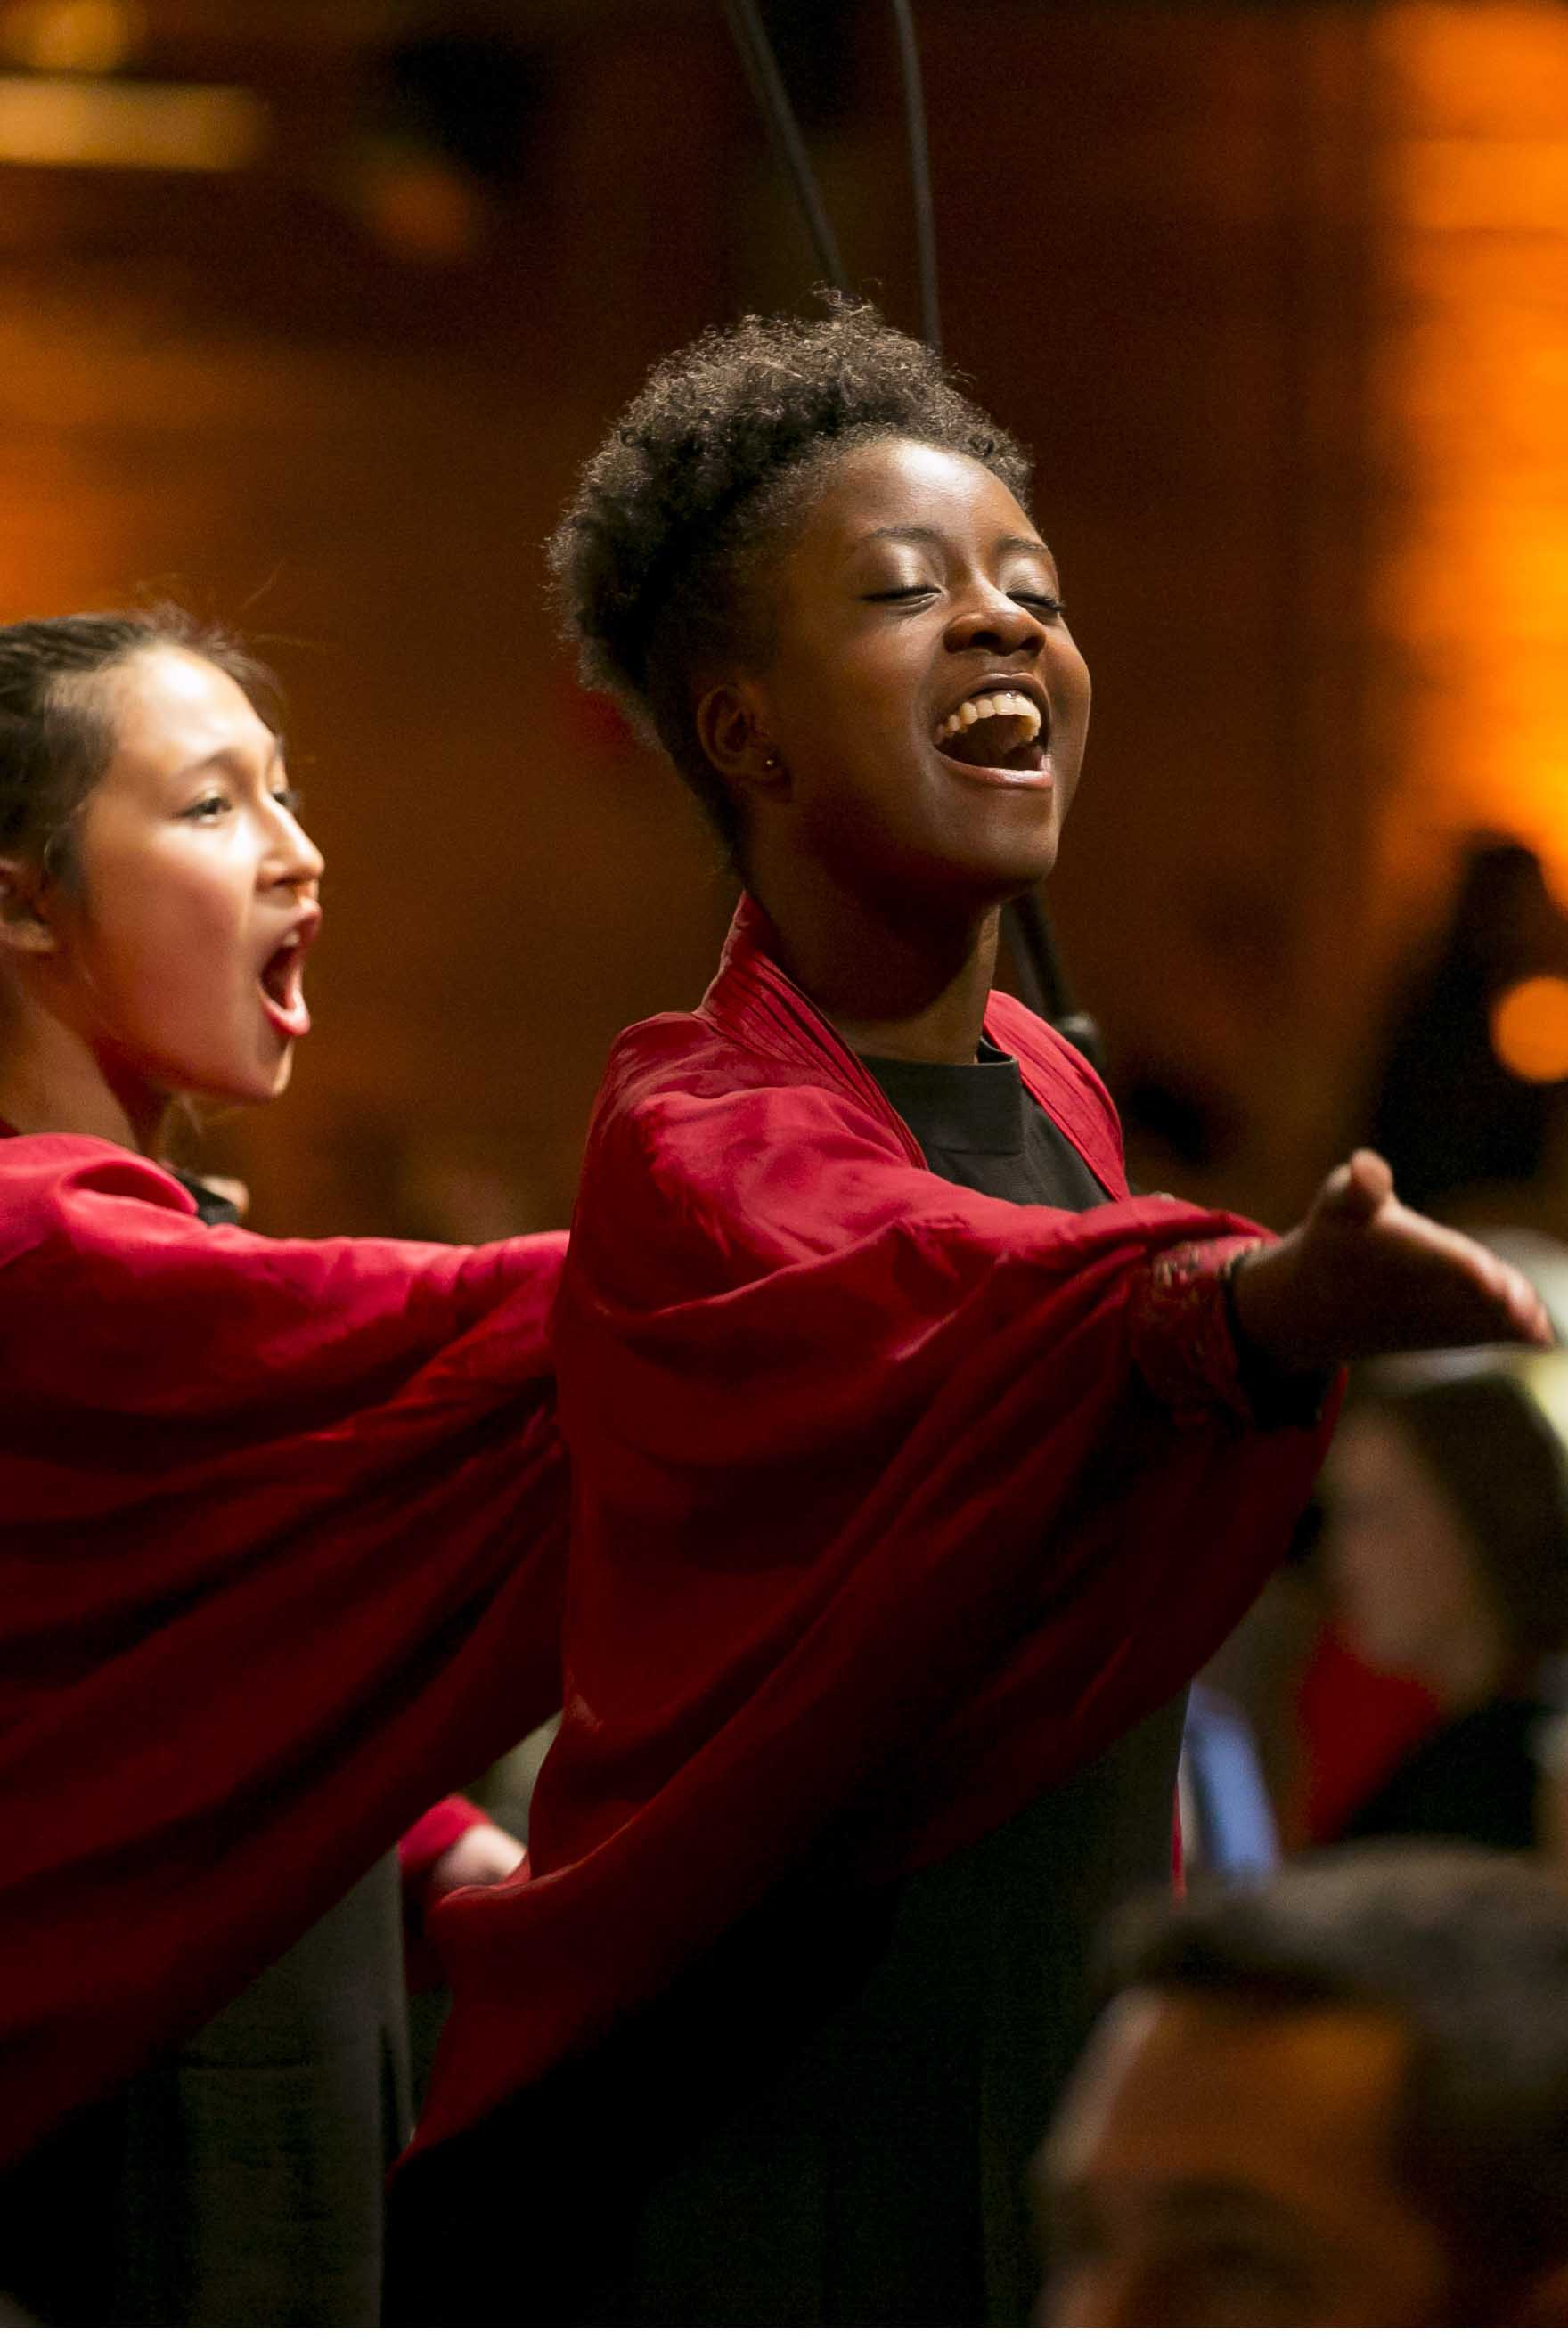 10/23/15 7:48:30 PM -- Chicago Children's Choir Red Jacket Optional honoring Joe and Jennifer Shanahan   © Todd Rosenberg Photography 2015